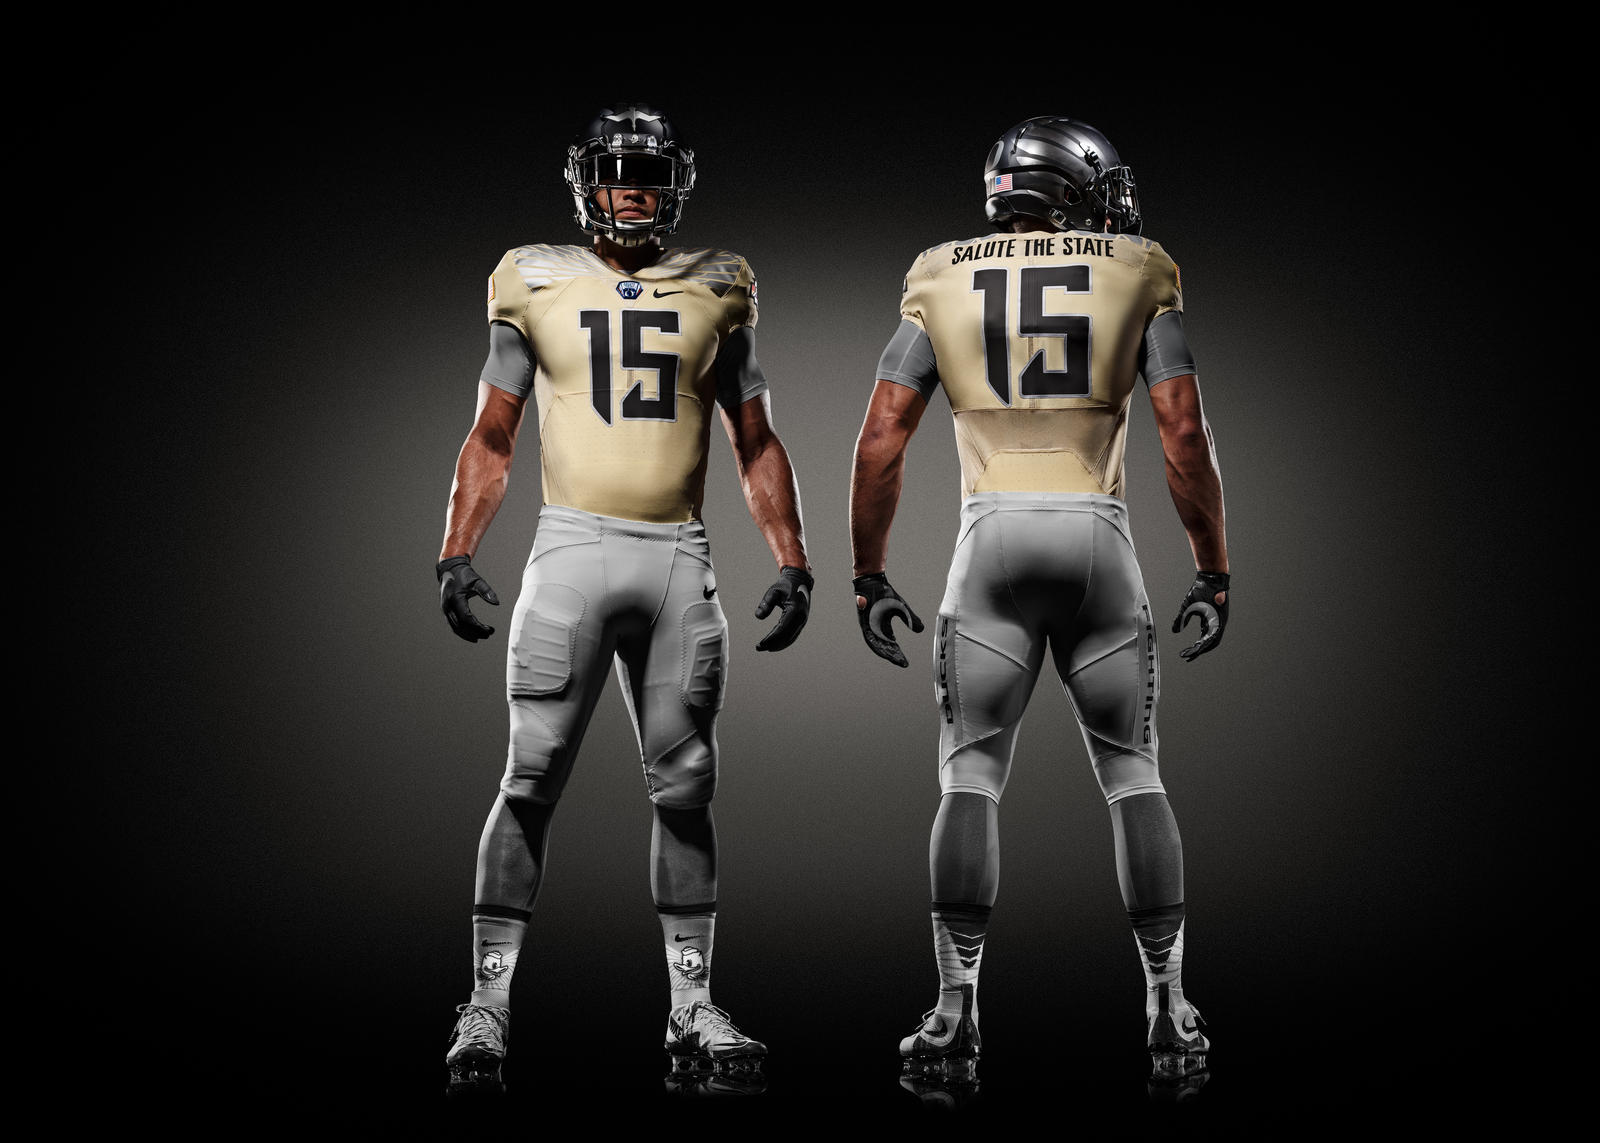 2479a326040 Ducks, Nike continue Spring Game uniform tradition - University of ...